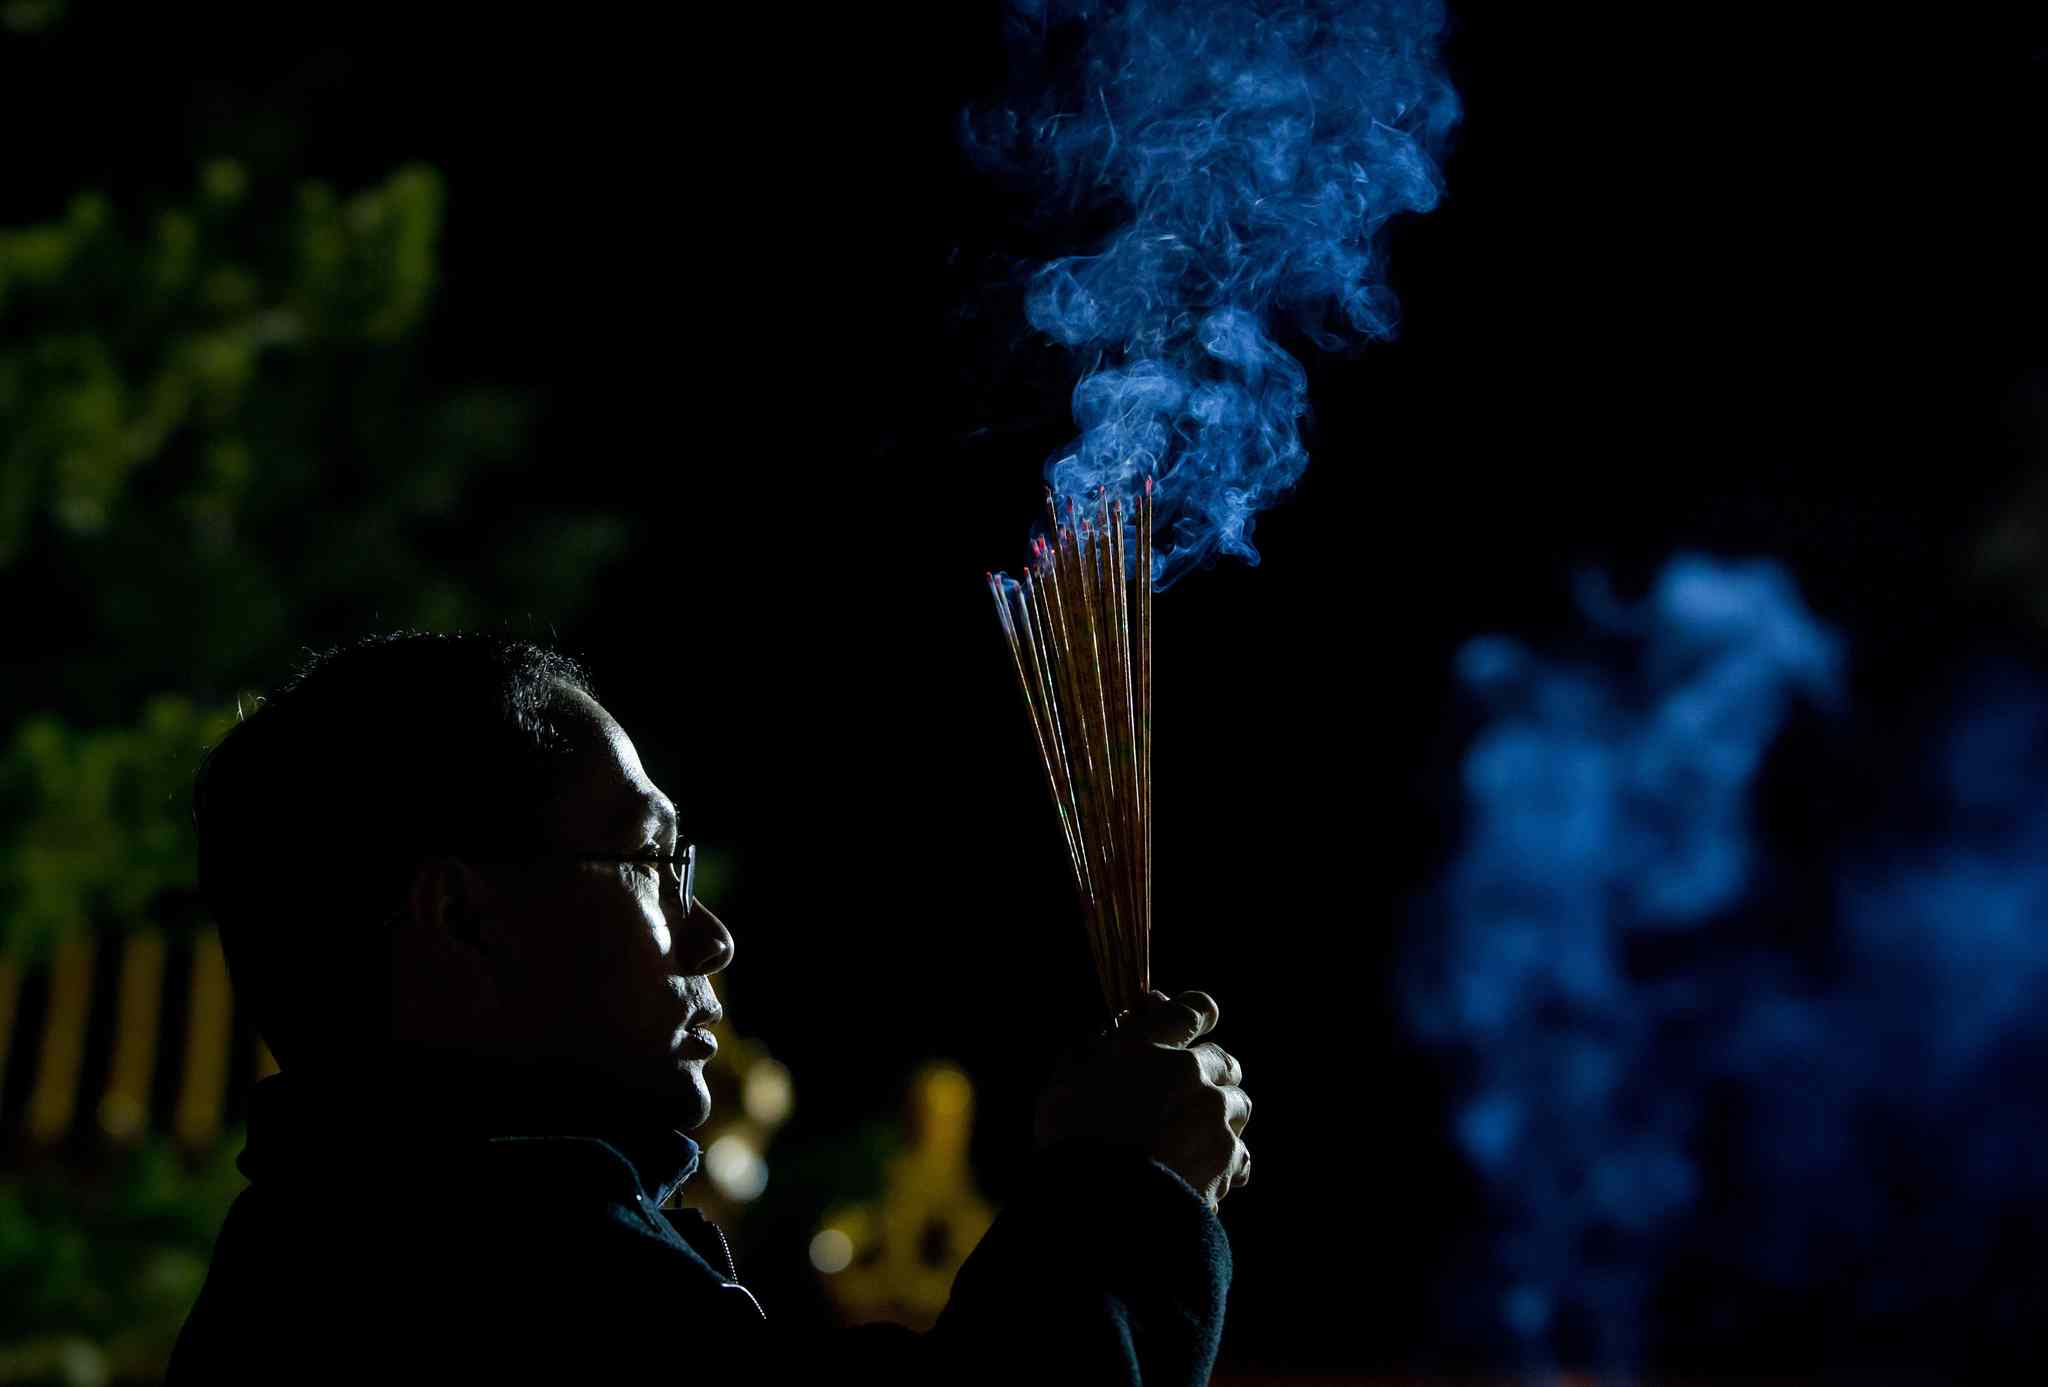 A man burns incense sticks and prays to mark the Lunar New Year at the International Buddhist Temple in Richmond, B.C., late Thursday, January 30, 2014. Thousands of people gathered at the temple to celebrate the beginning of the new year.